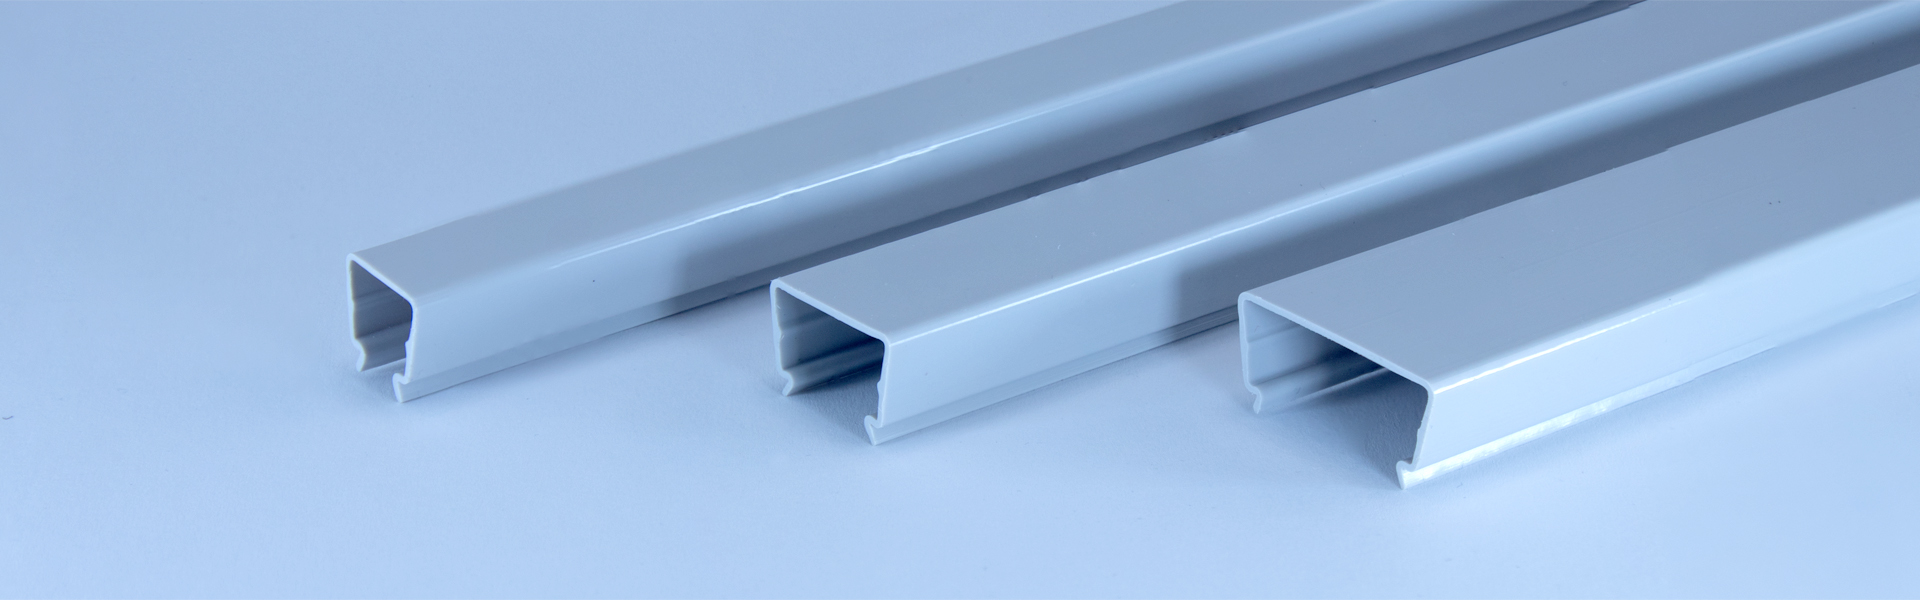 ftg busbar protection cover